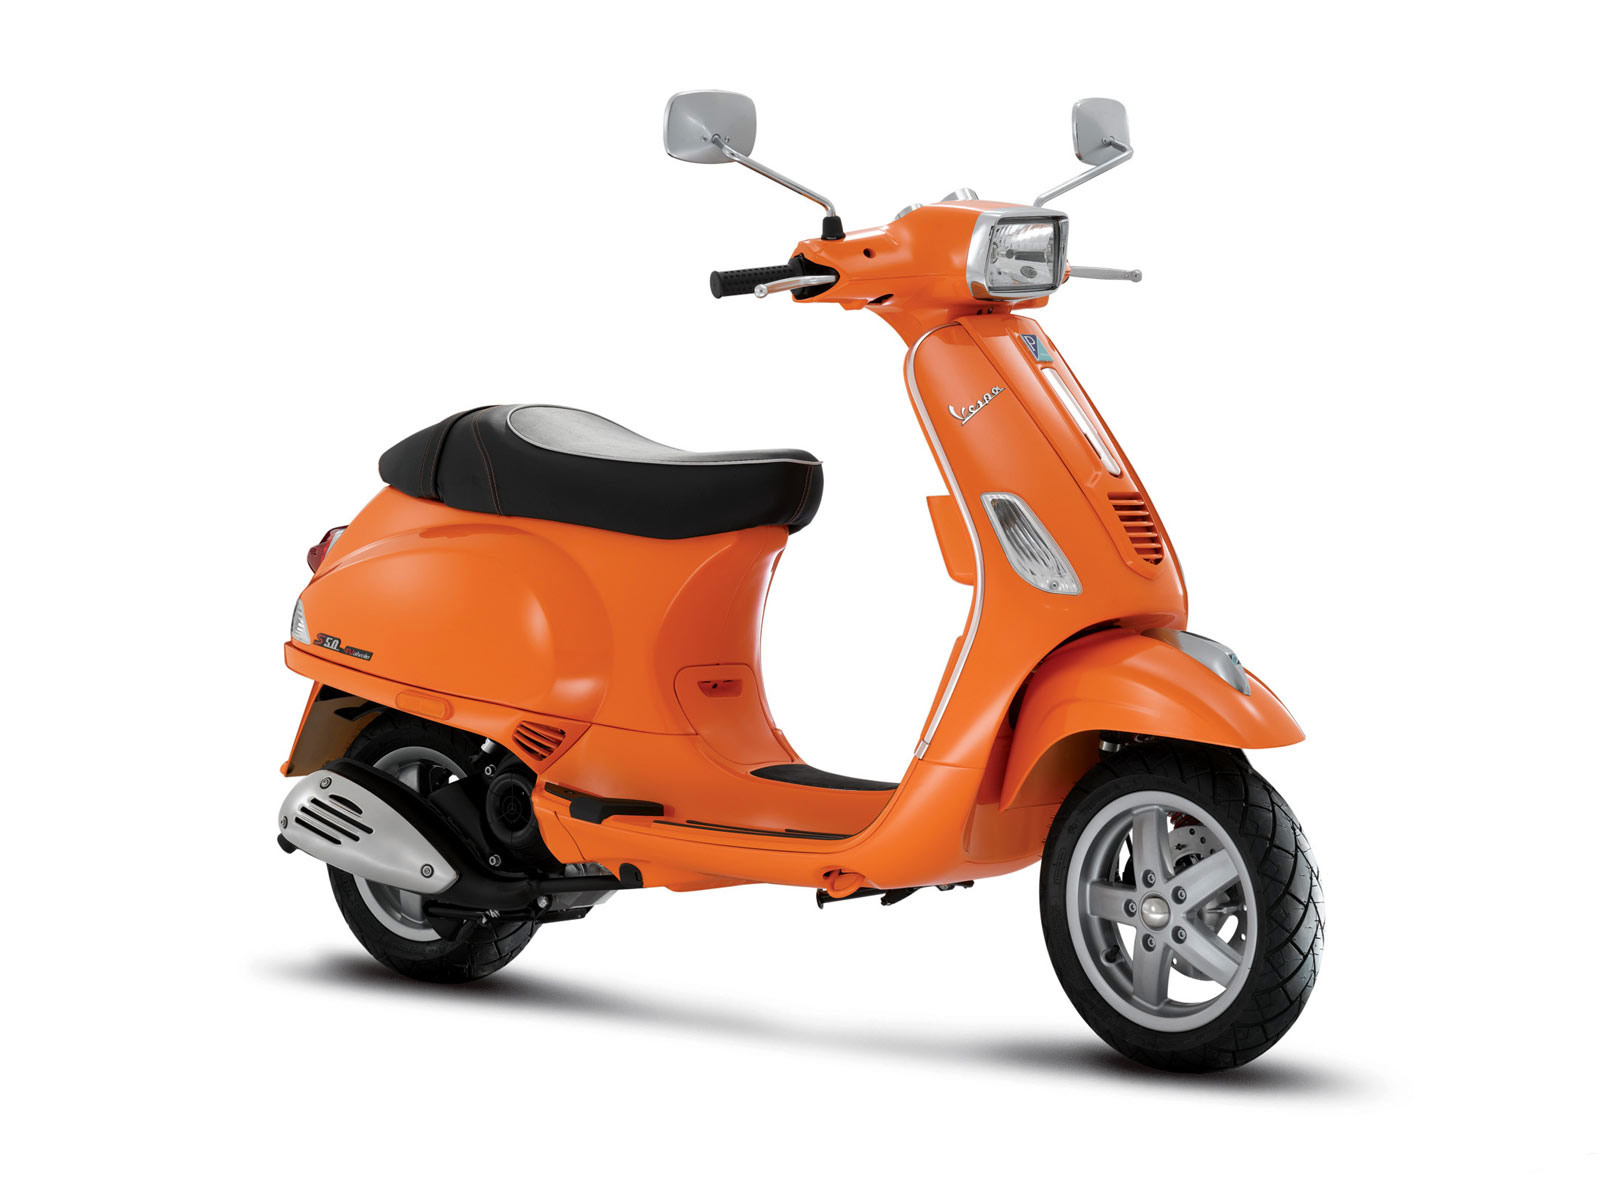 accident lawyers information 2008 vespa s 50 4v scooter. Black Bedroom Furniture Sets. Home Design Ideas